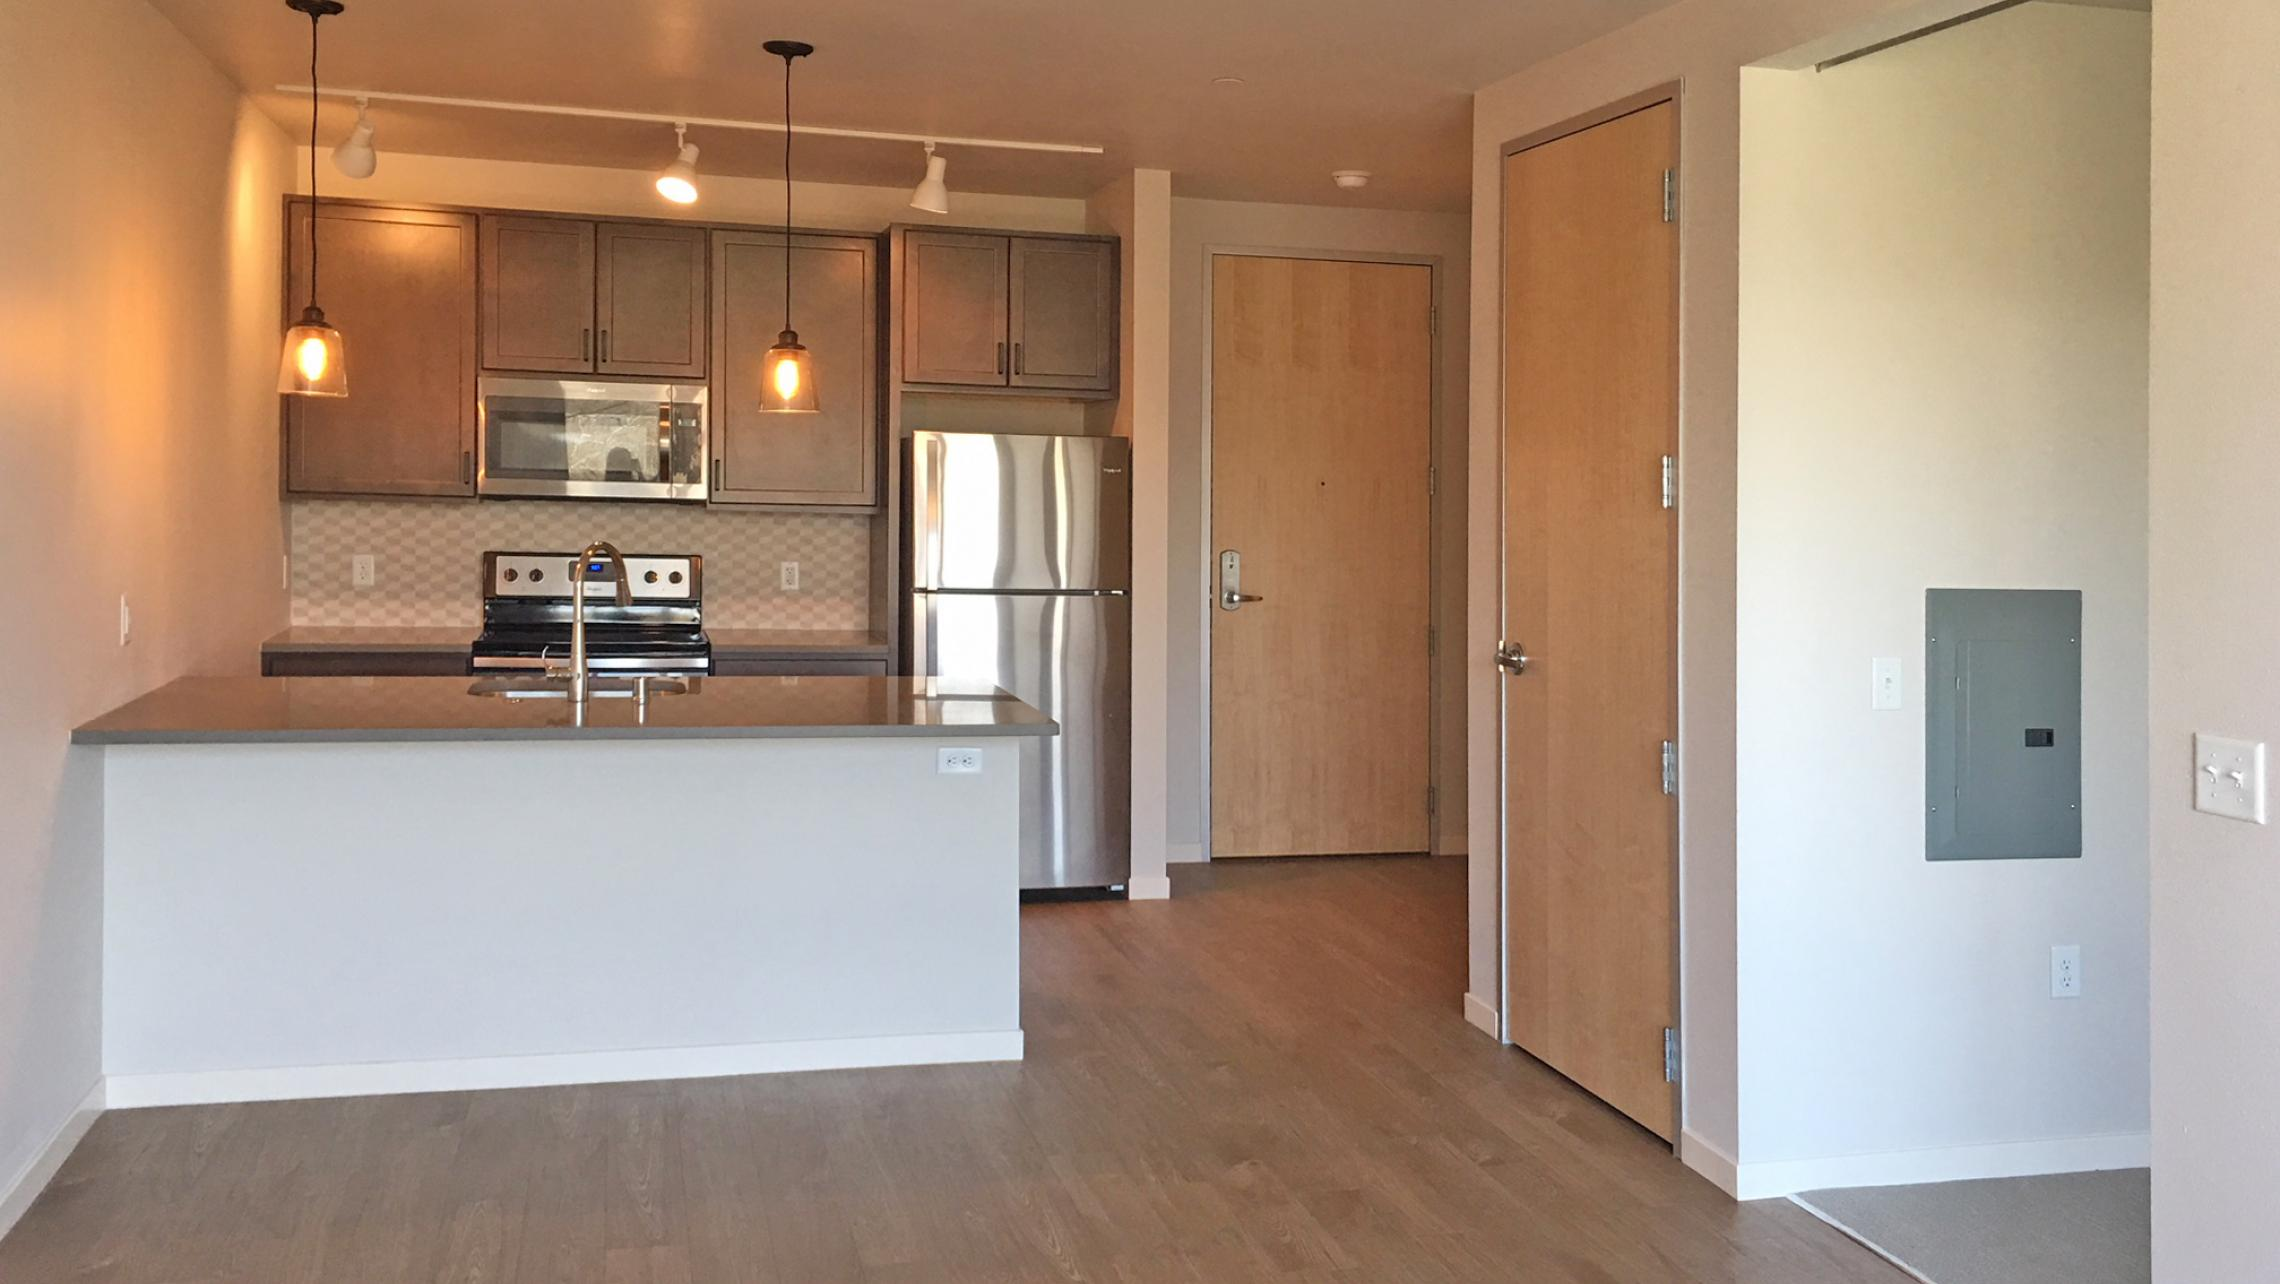 Quarter-Row-Apartments-304-One-Bedroom-Downtown-Madison-The-Yards-Luxury-Upscale-Modern-Madison-Bike-Path-Parks-Lake-Design